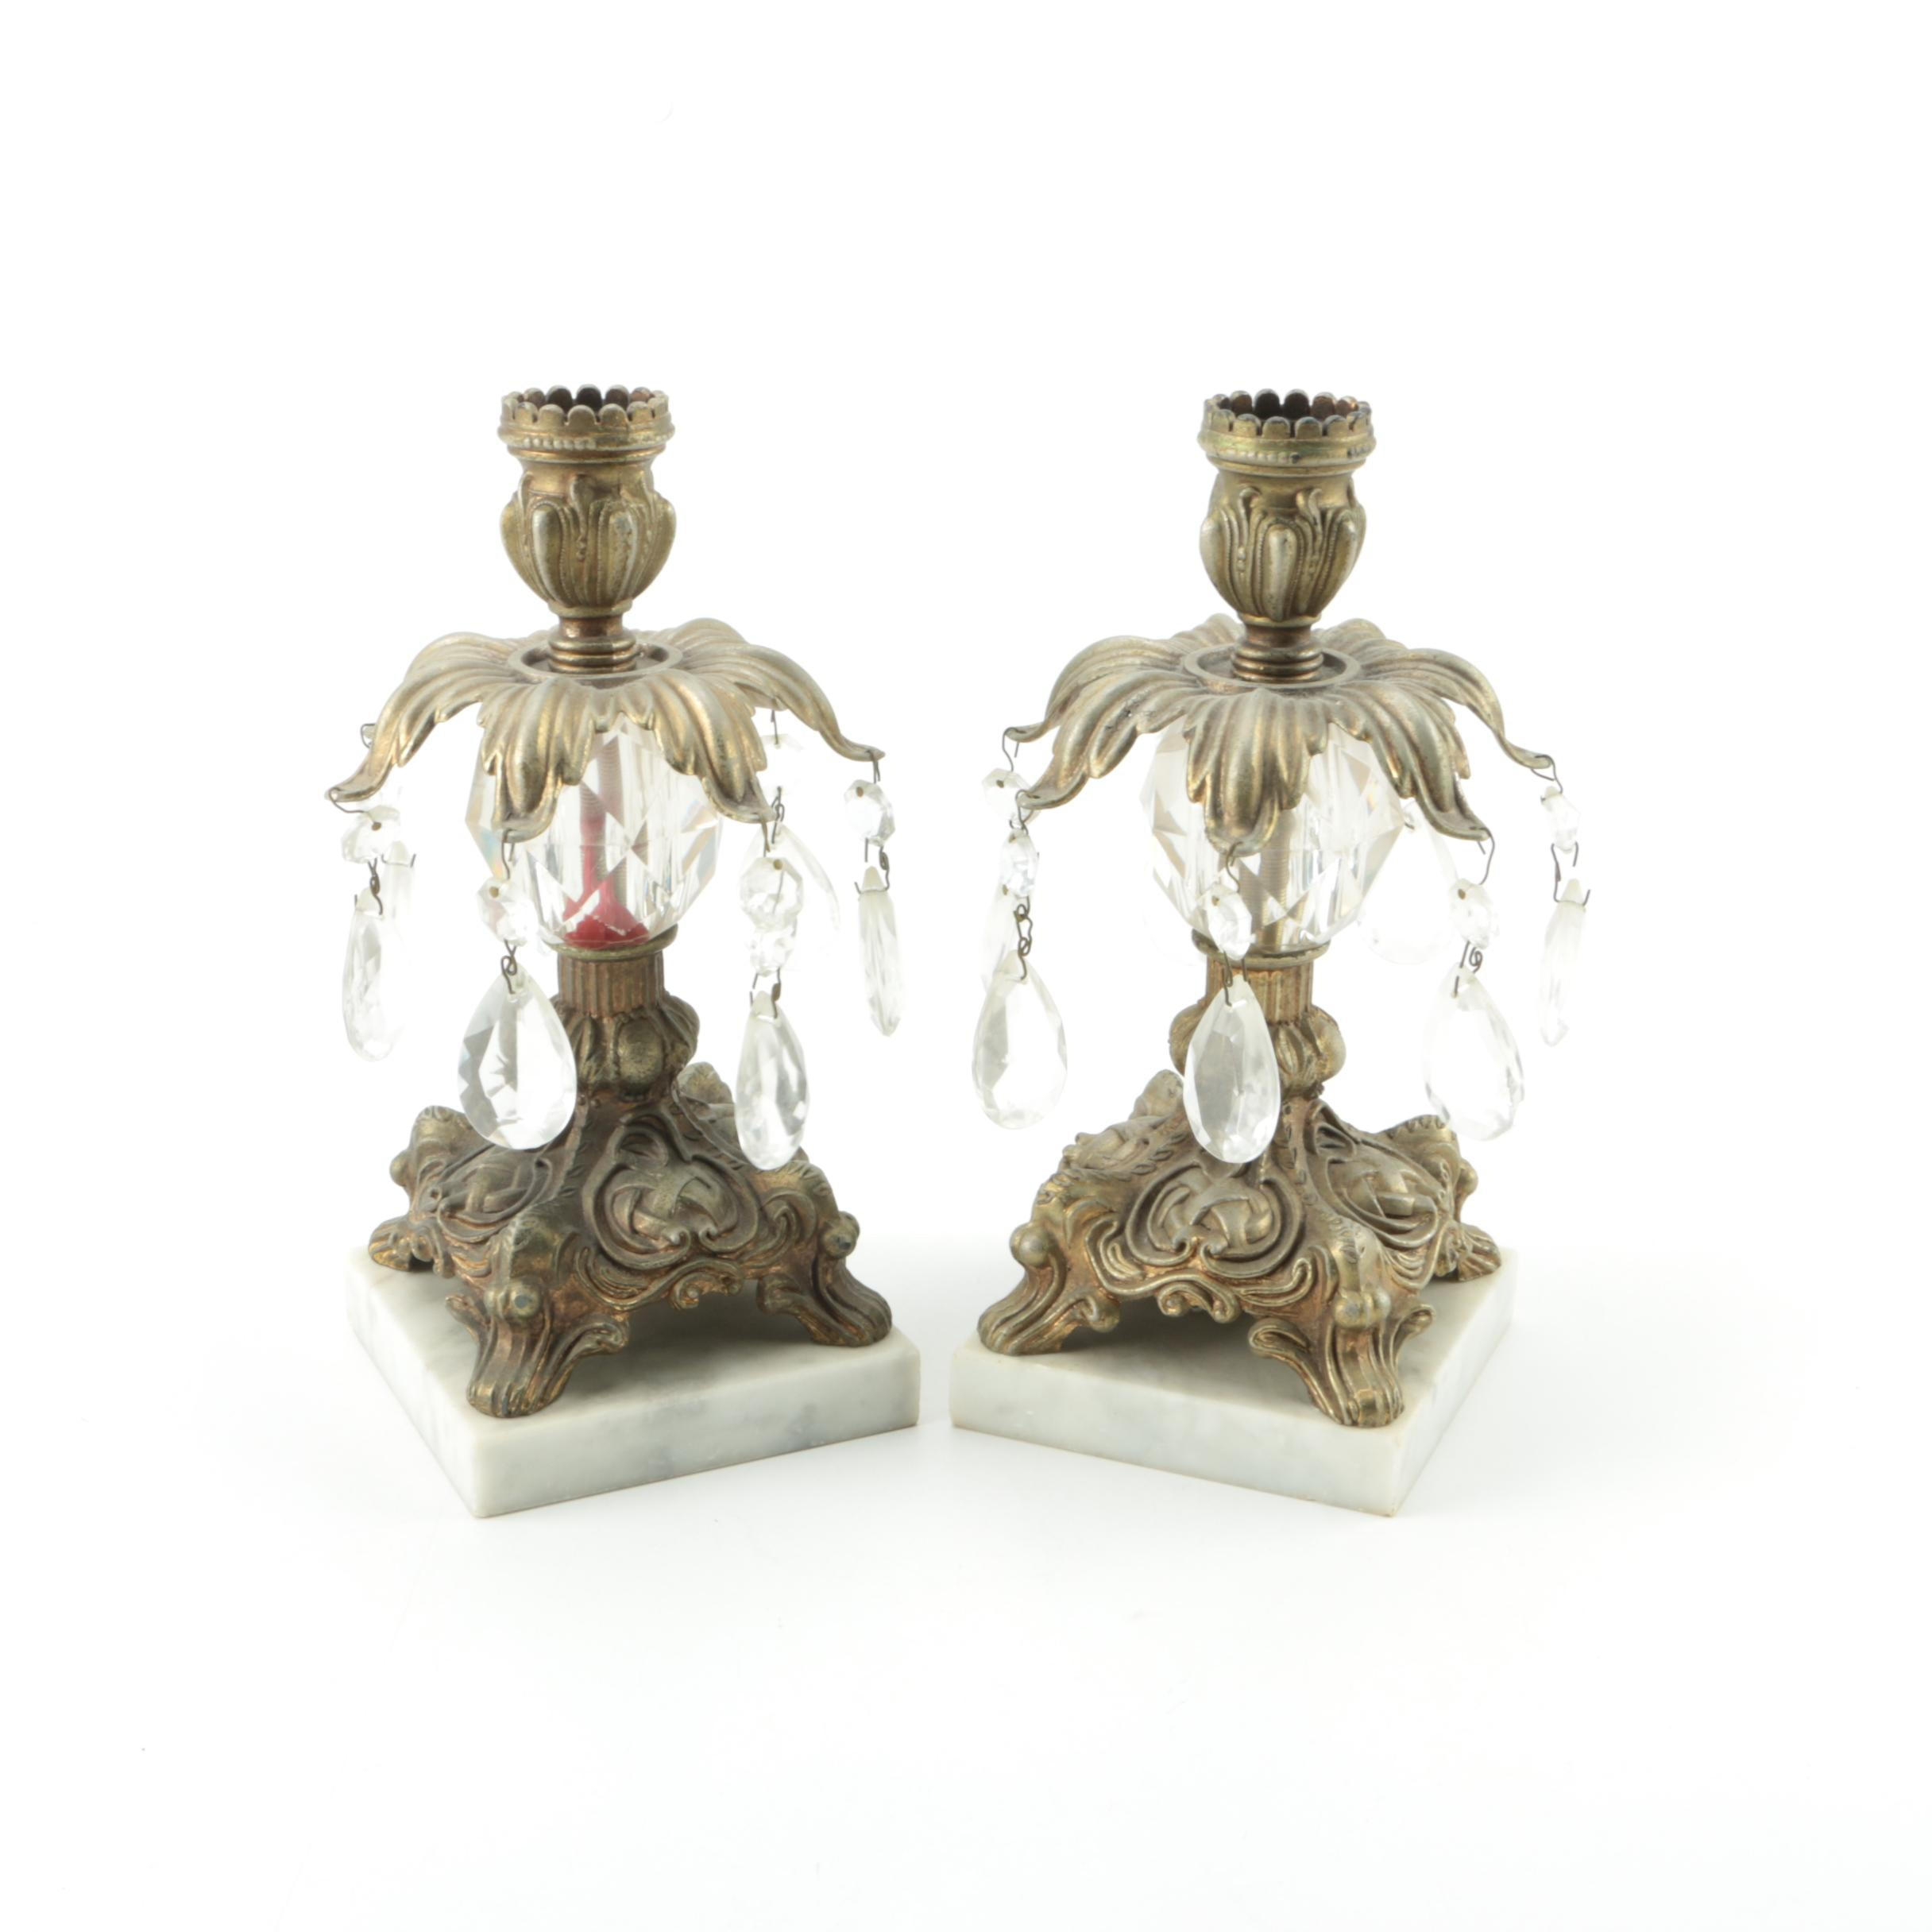 Brass Lusters on Marble Bases